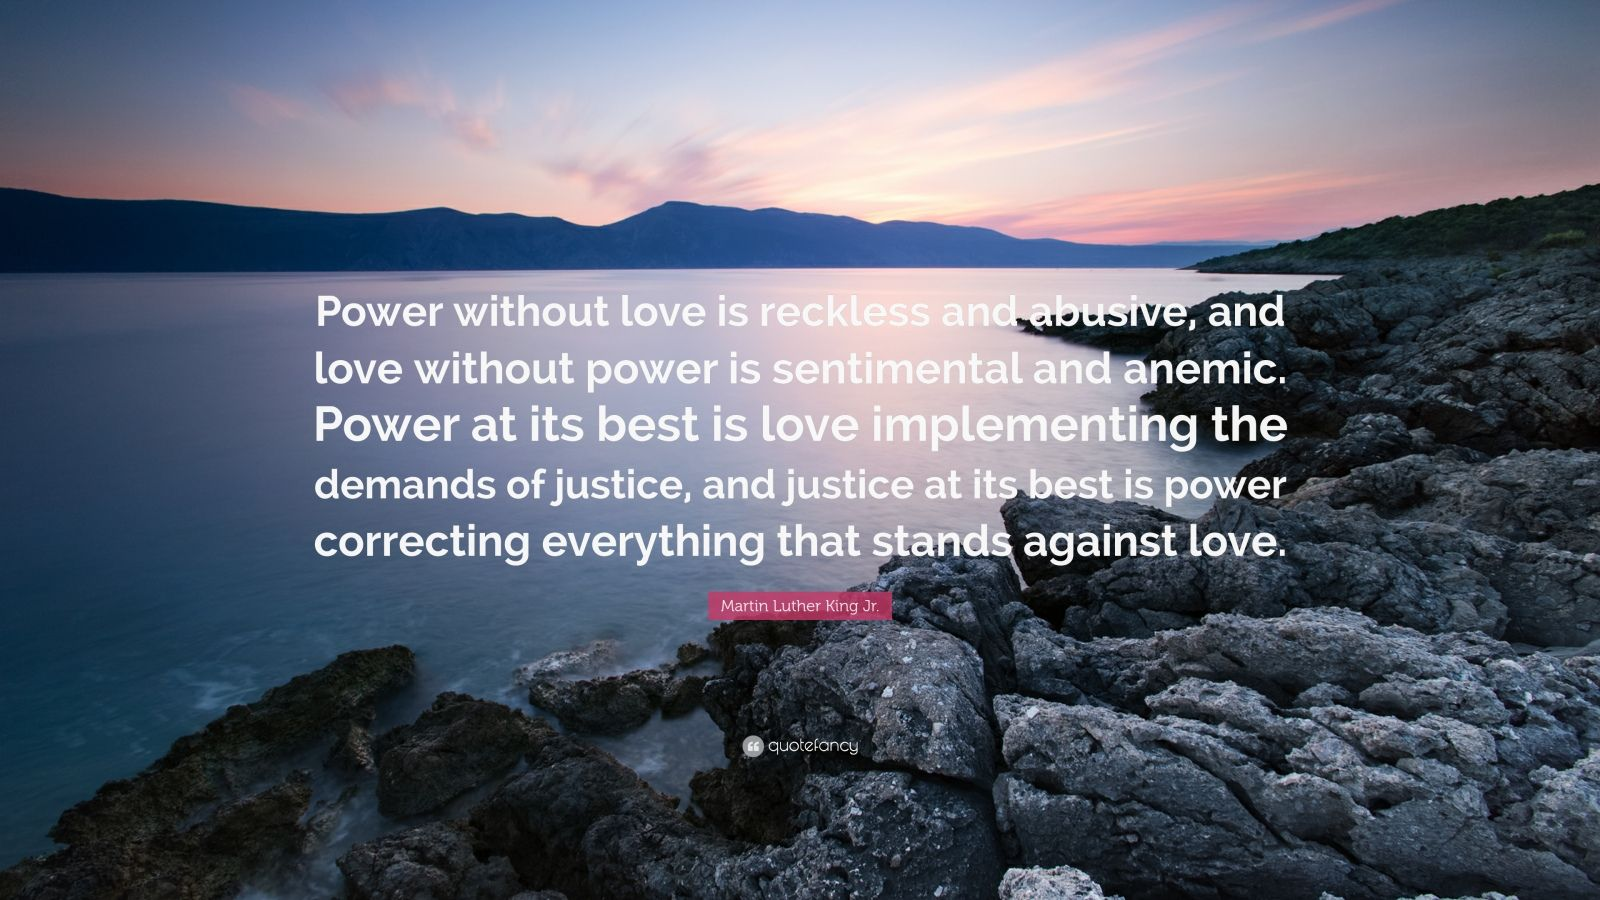 "Martin Luther King Jr. Quote: ""Power without love is reckless and abusive, and love without power is sentimental and anemic. Power at its best is love implementing the demands of justice, and justice at its best is power correcting everything that stands against love."""